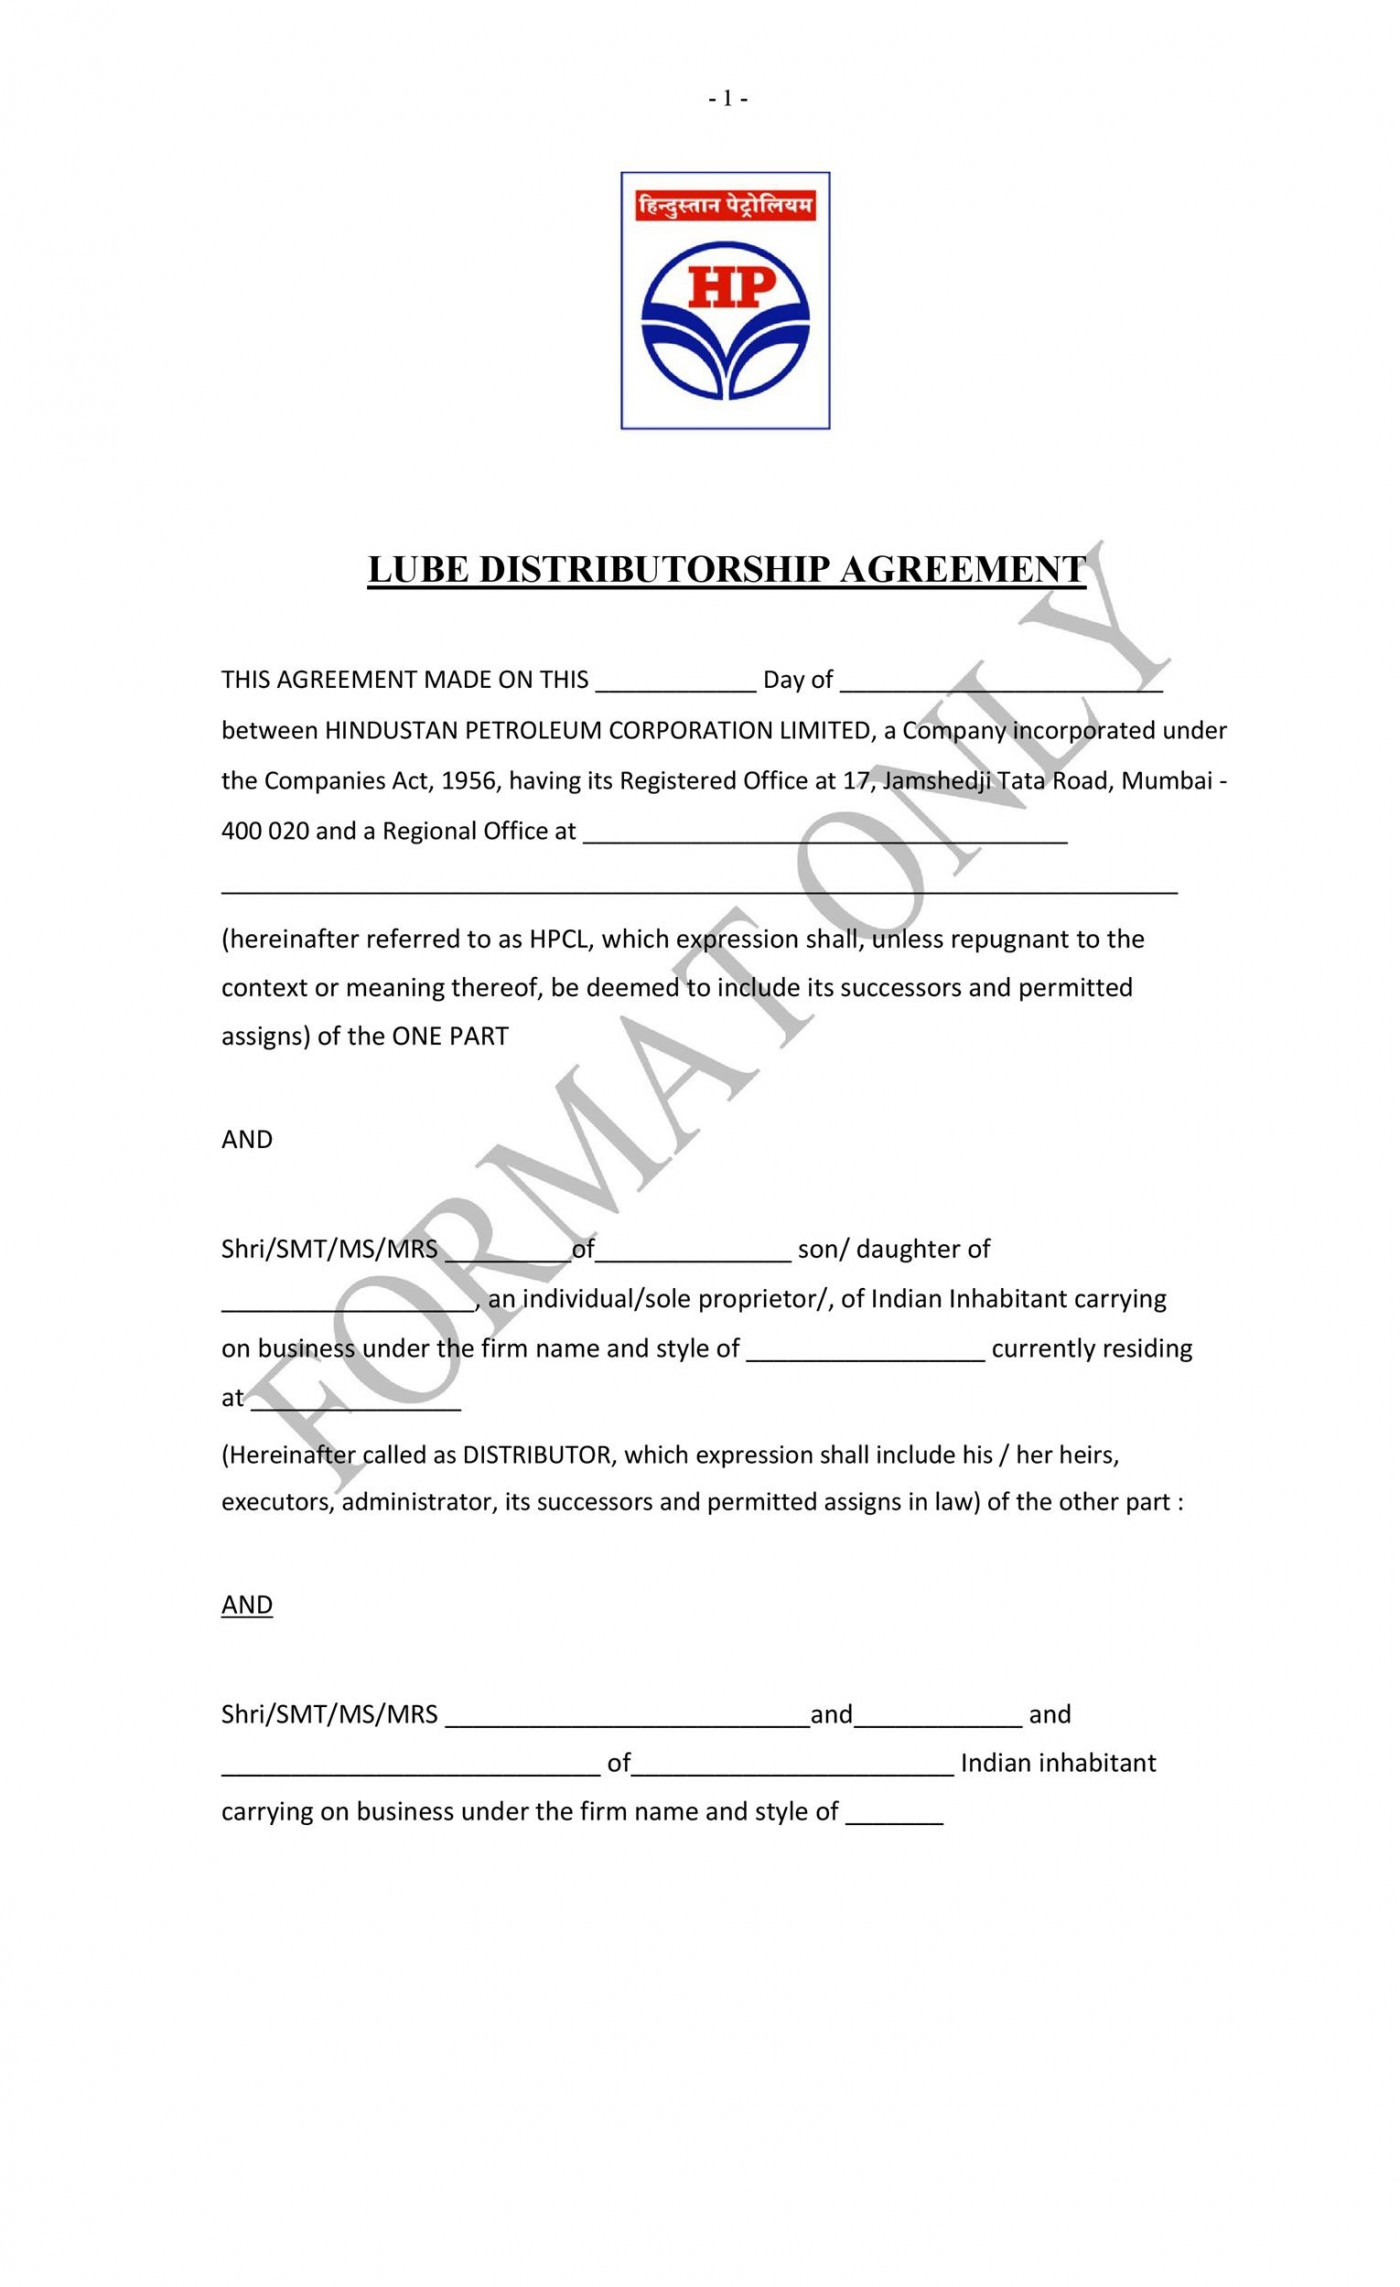 007 Incredible Exclusive Distribution Contract Template High Resolution  Agreement Australia Uk Non Free1400